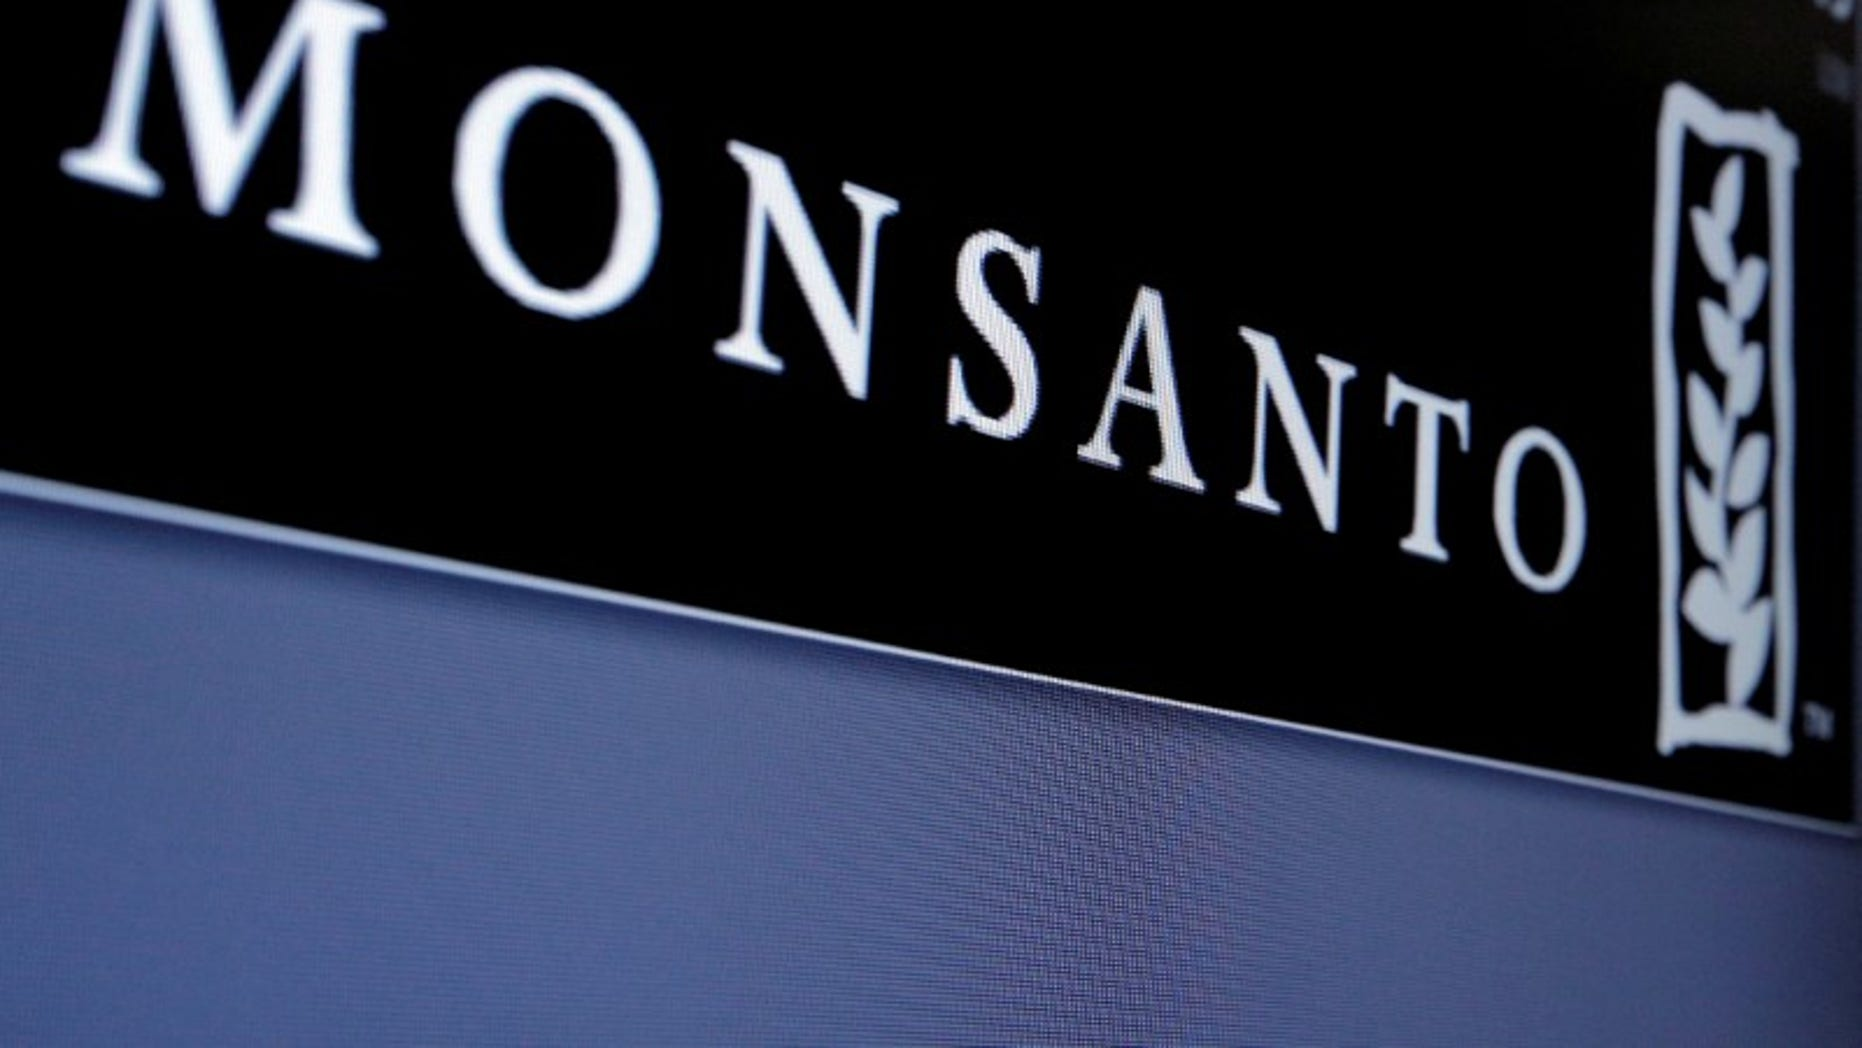 Monsanto logo is displayed on a screen where the stock is traded on the floor of the NYSE